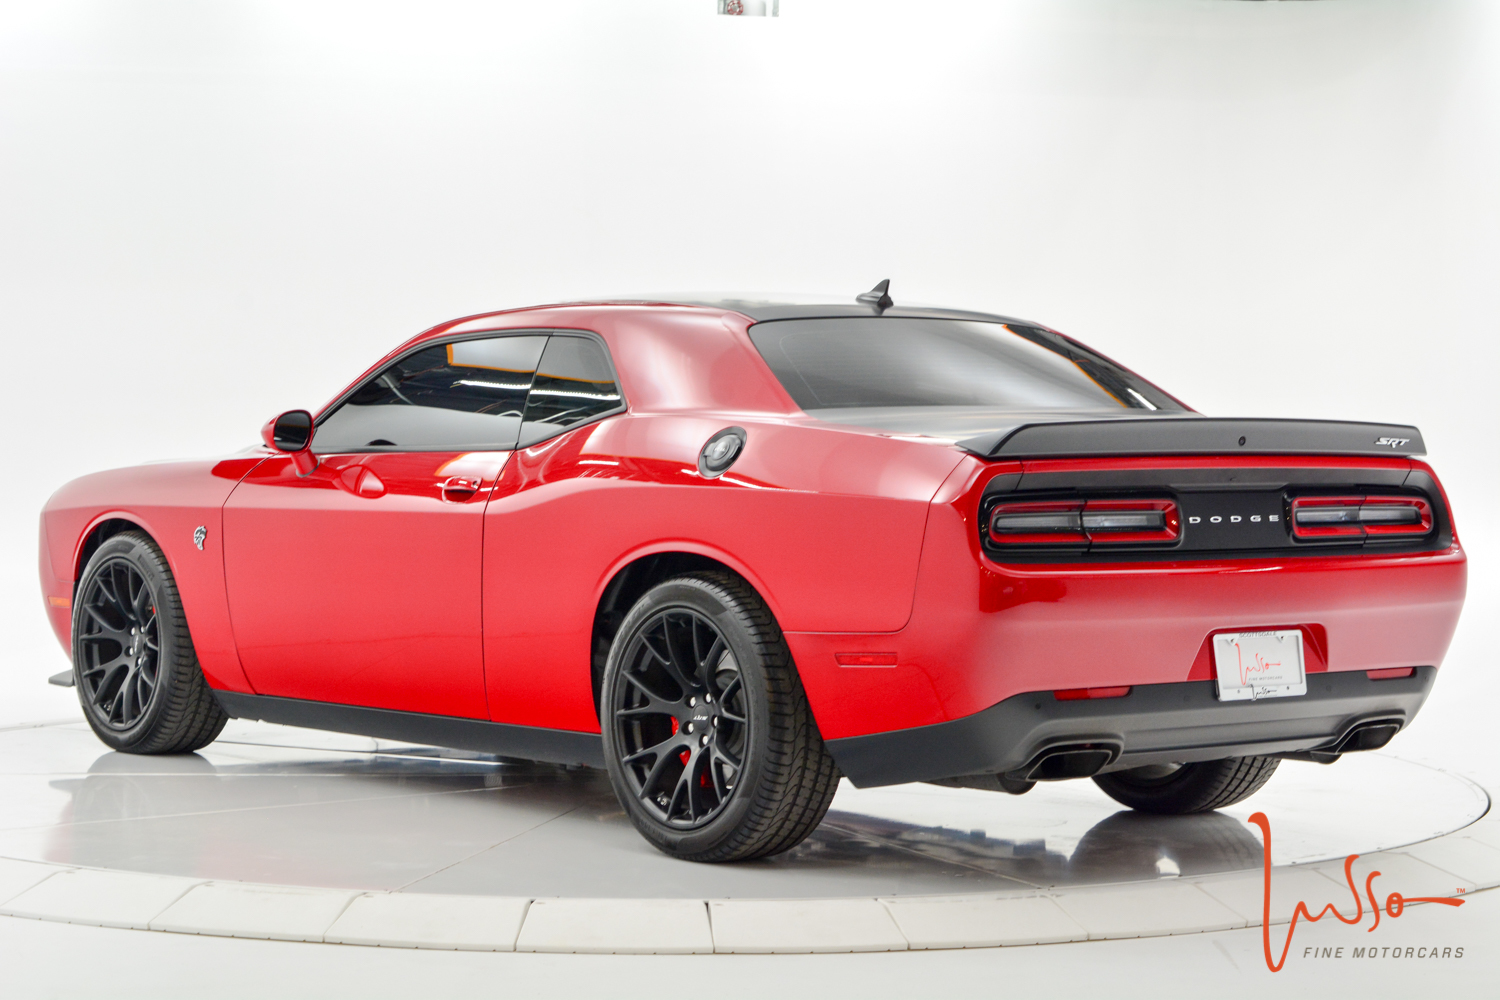 2016 dodge challenger srt hellcat coupe 2 door ebay. Black Bedroom Furniture Sets. Home Design Ideas